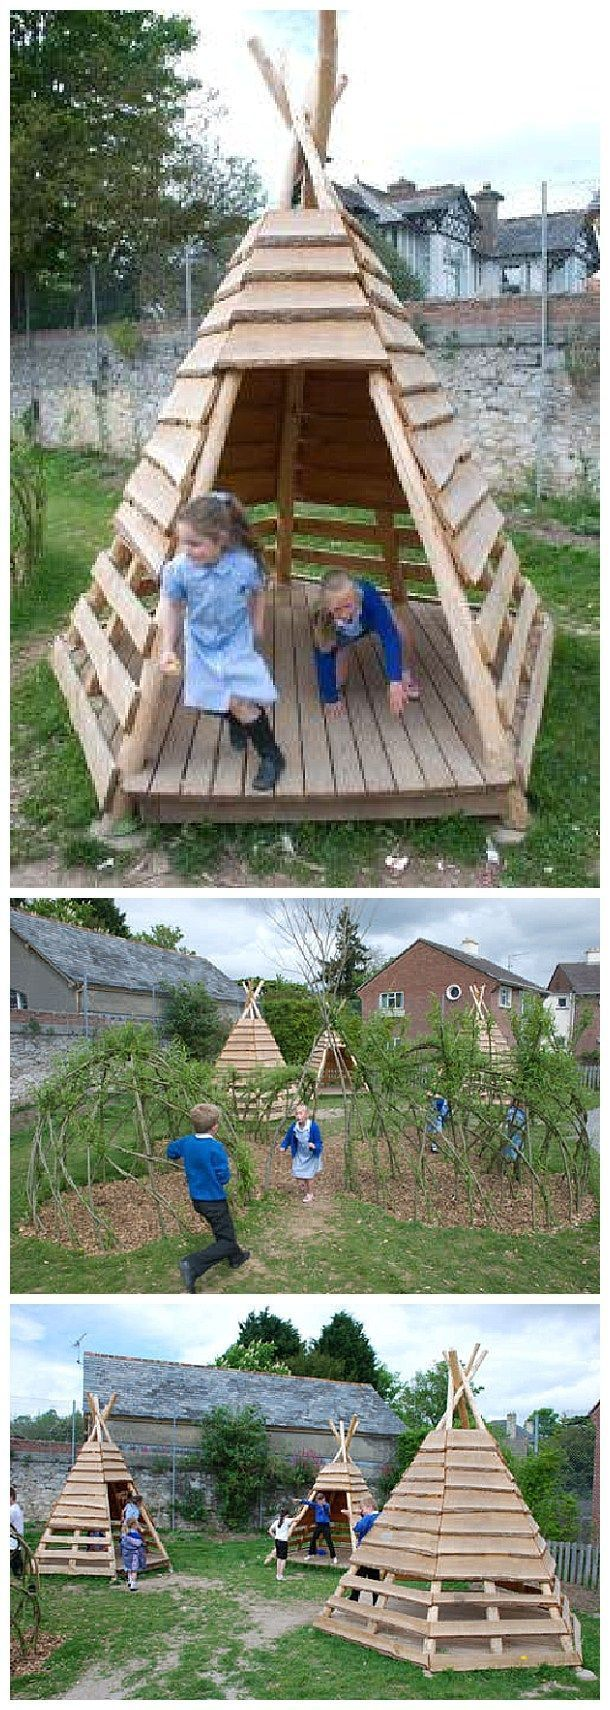 Diy pallet projects the best reclaimed wood upcycle ideas palets pallet projects diy outdoor teepee for a kids playground or the backyard do it solutioingenieria Images